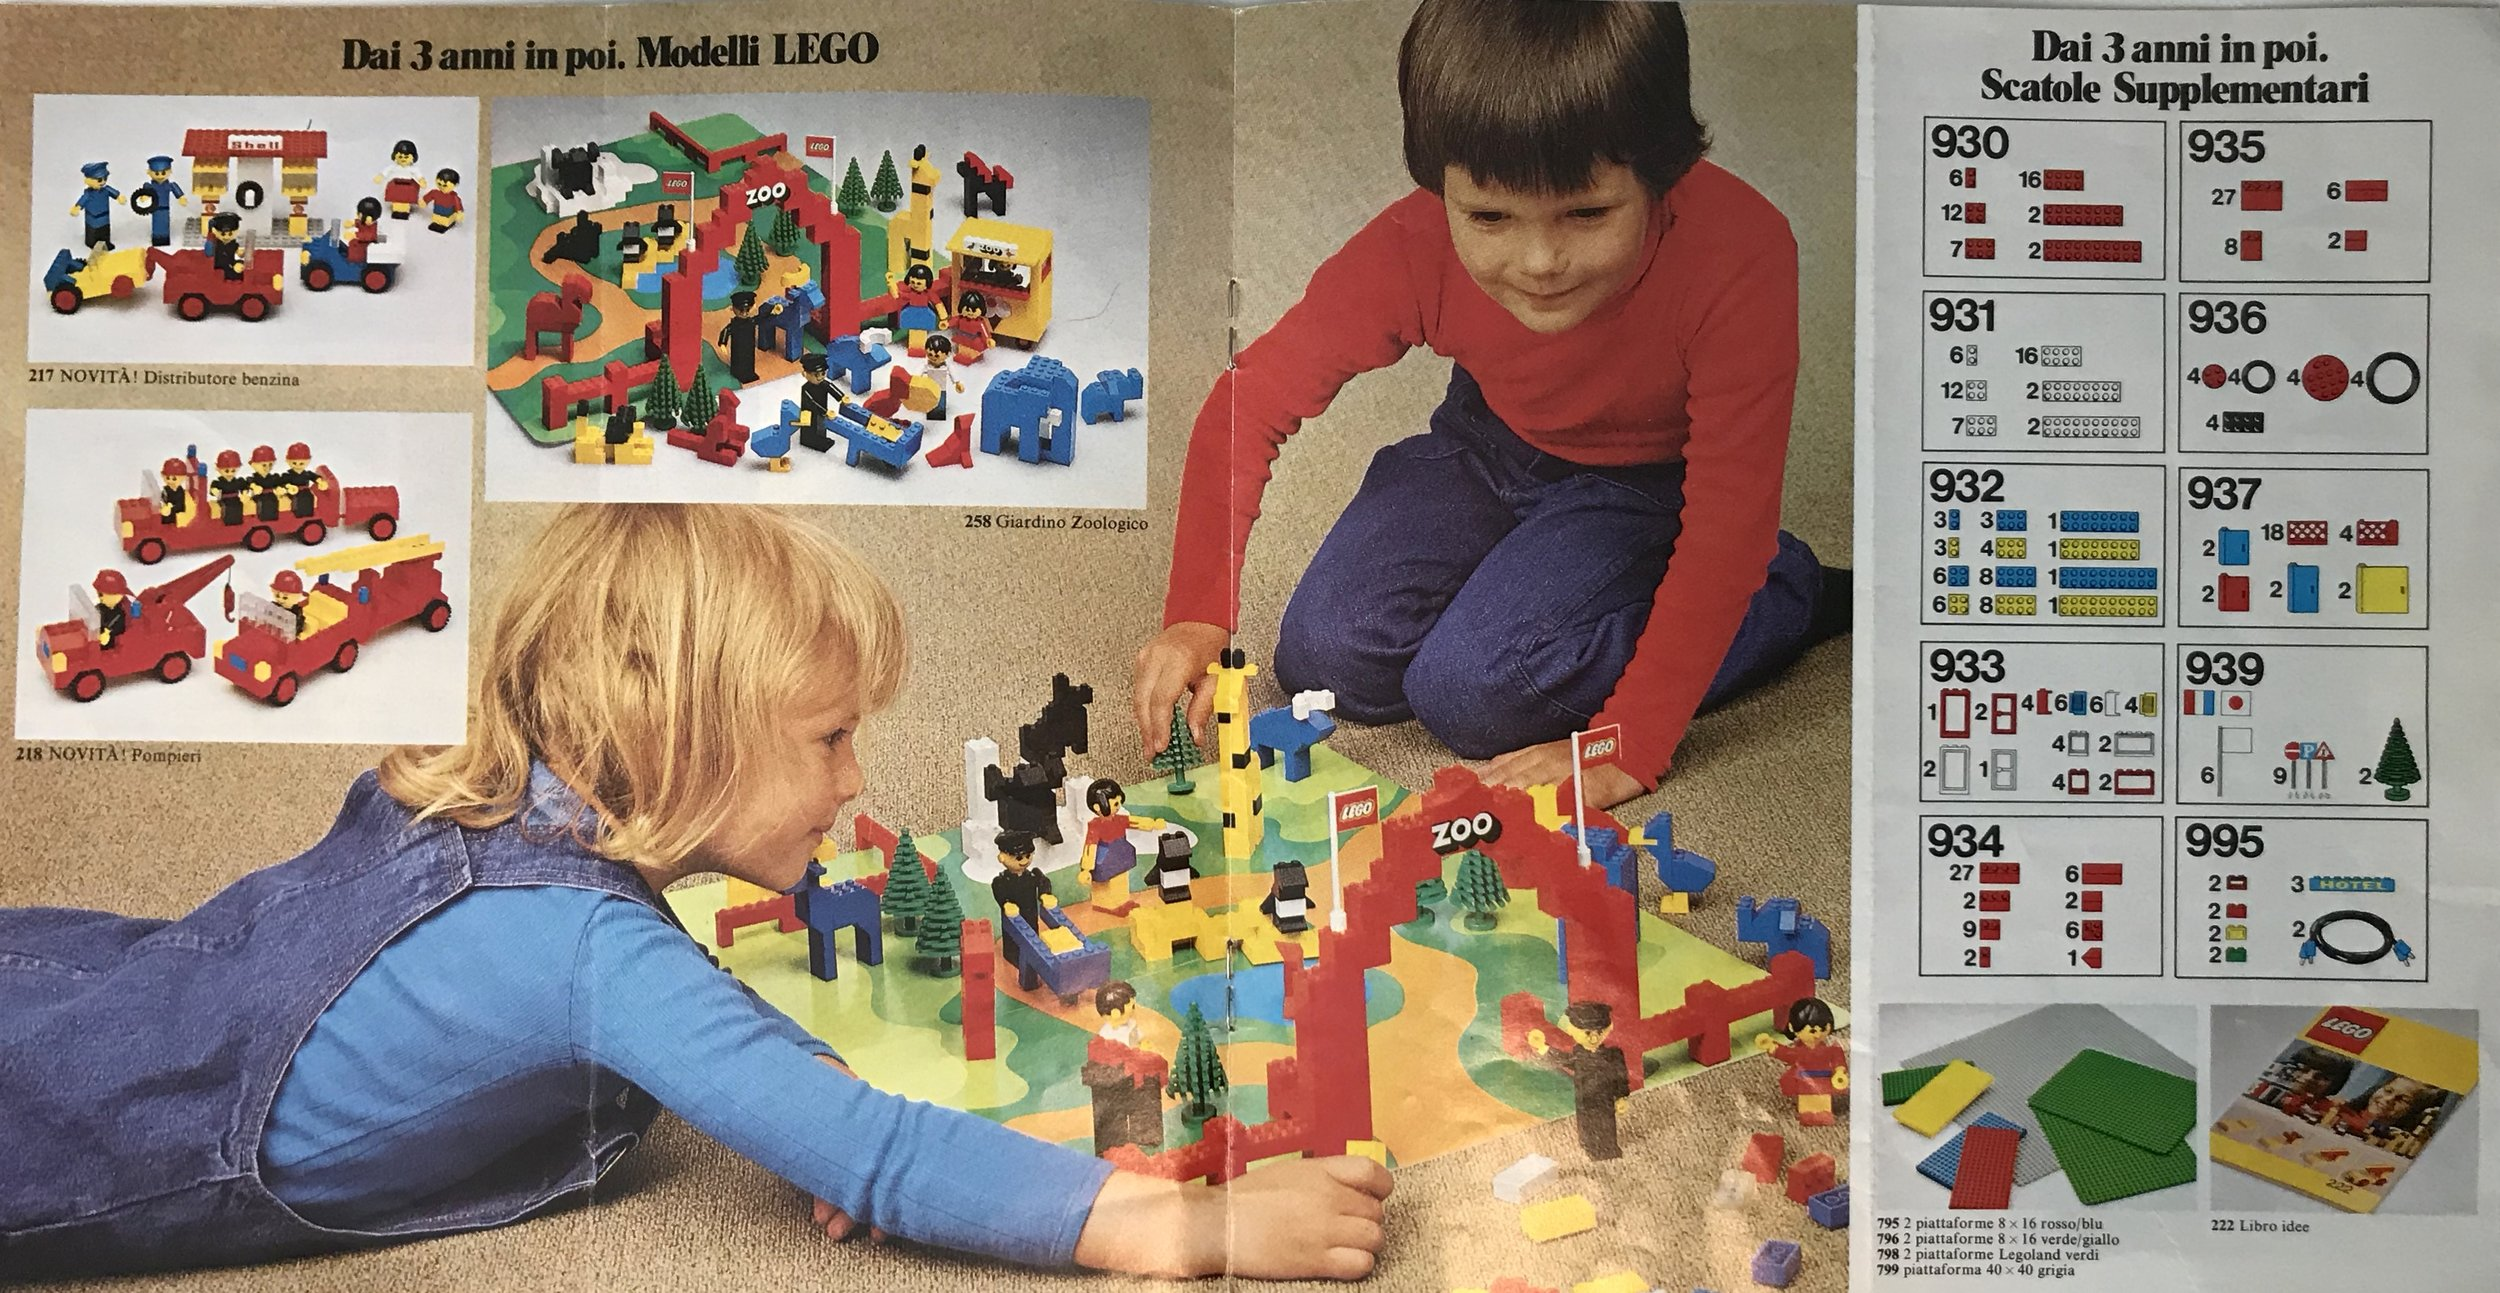 Lego advertising from 1977 was gender-neutral and egalitarian.